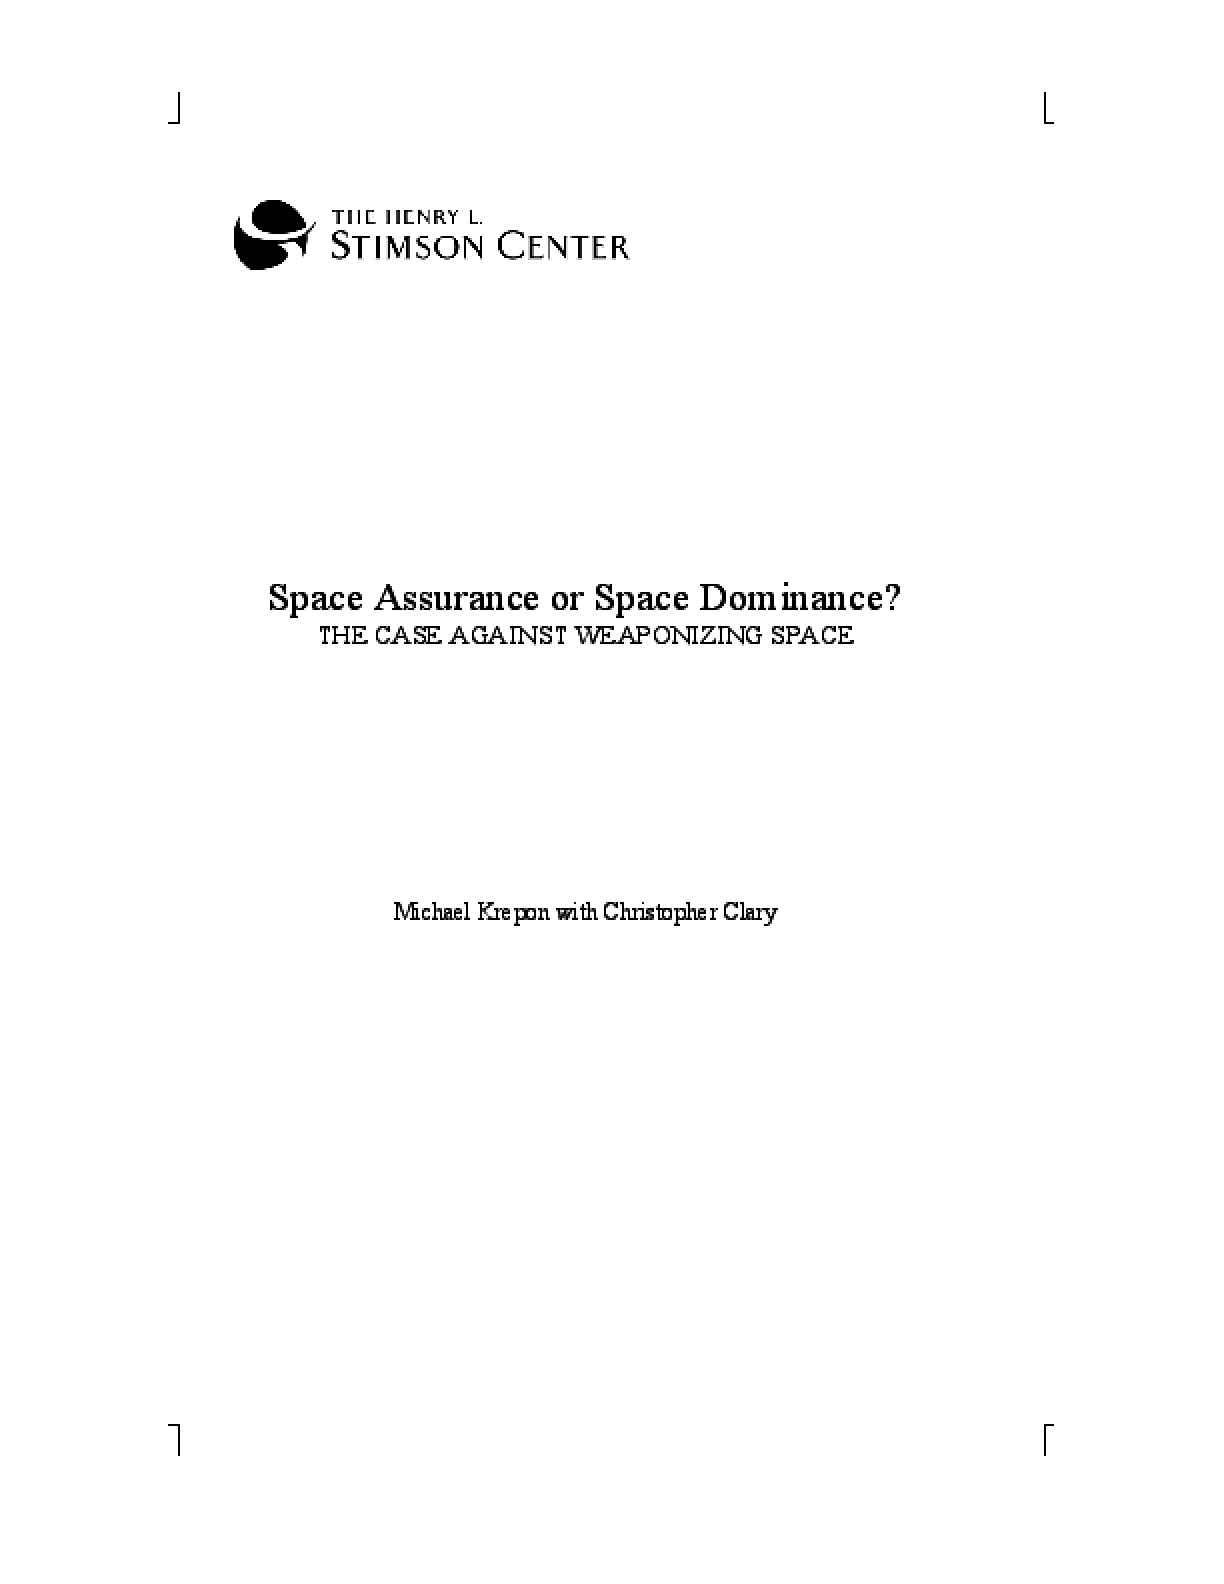 Space Assurance or Space Dominance? The Case Against Weaponizing Space